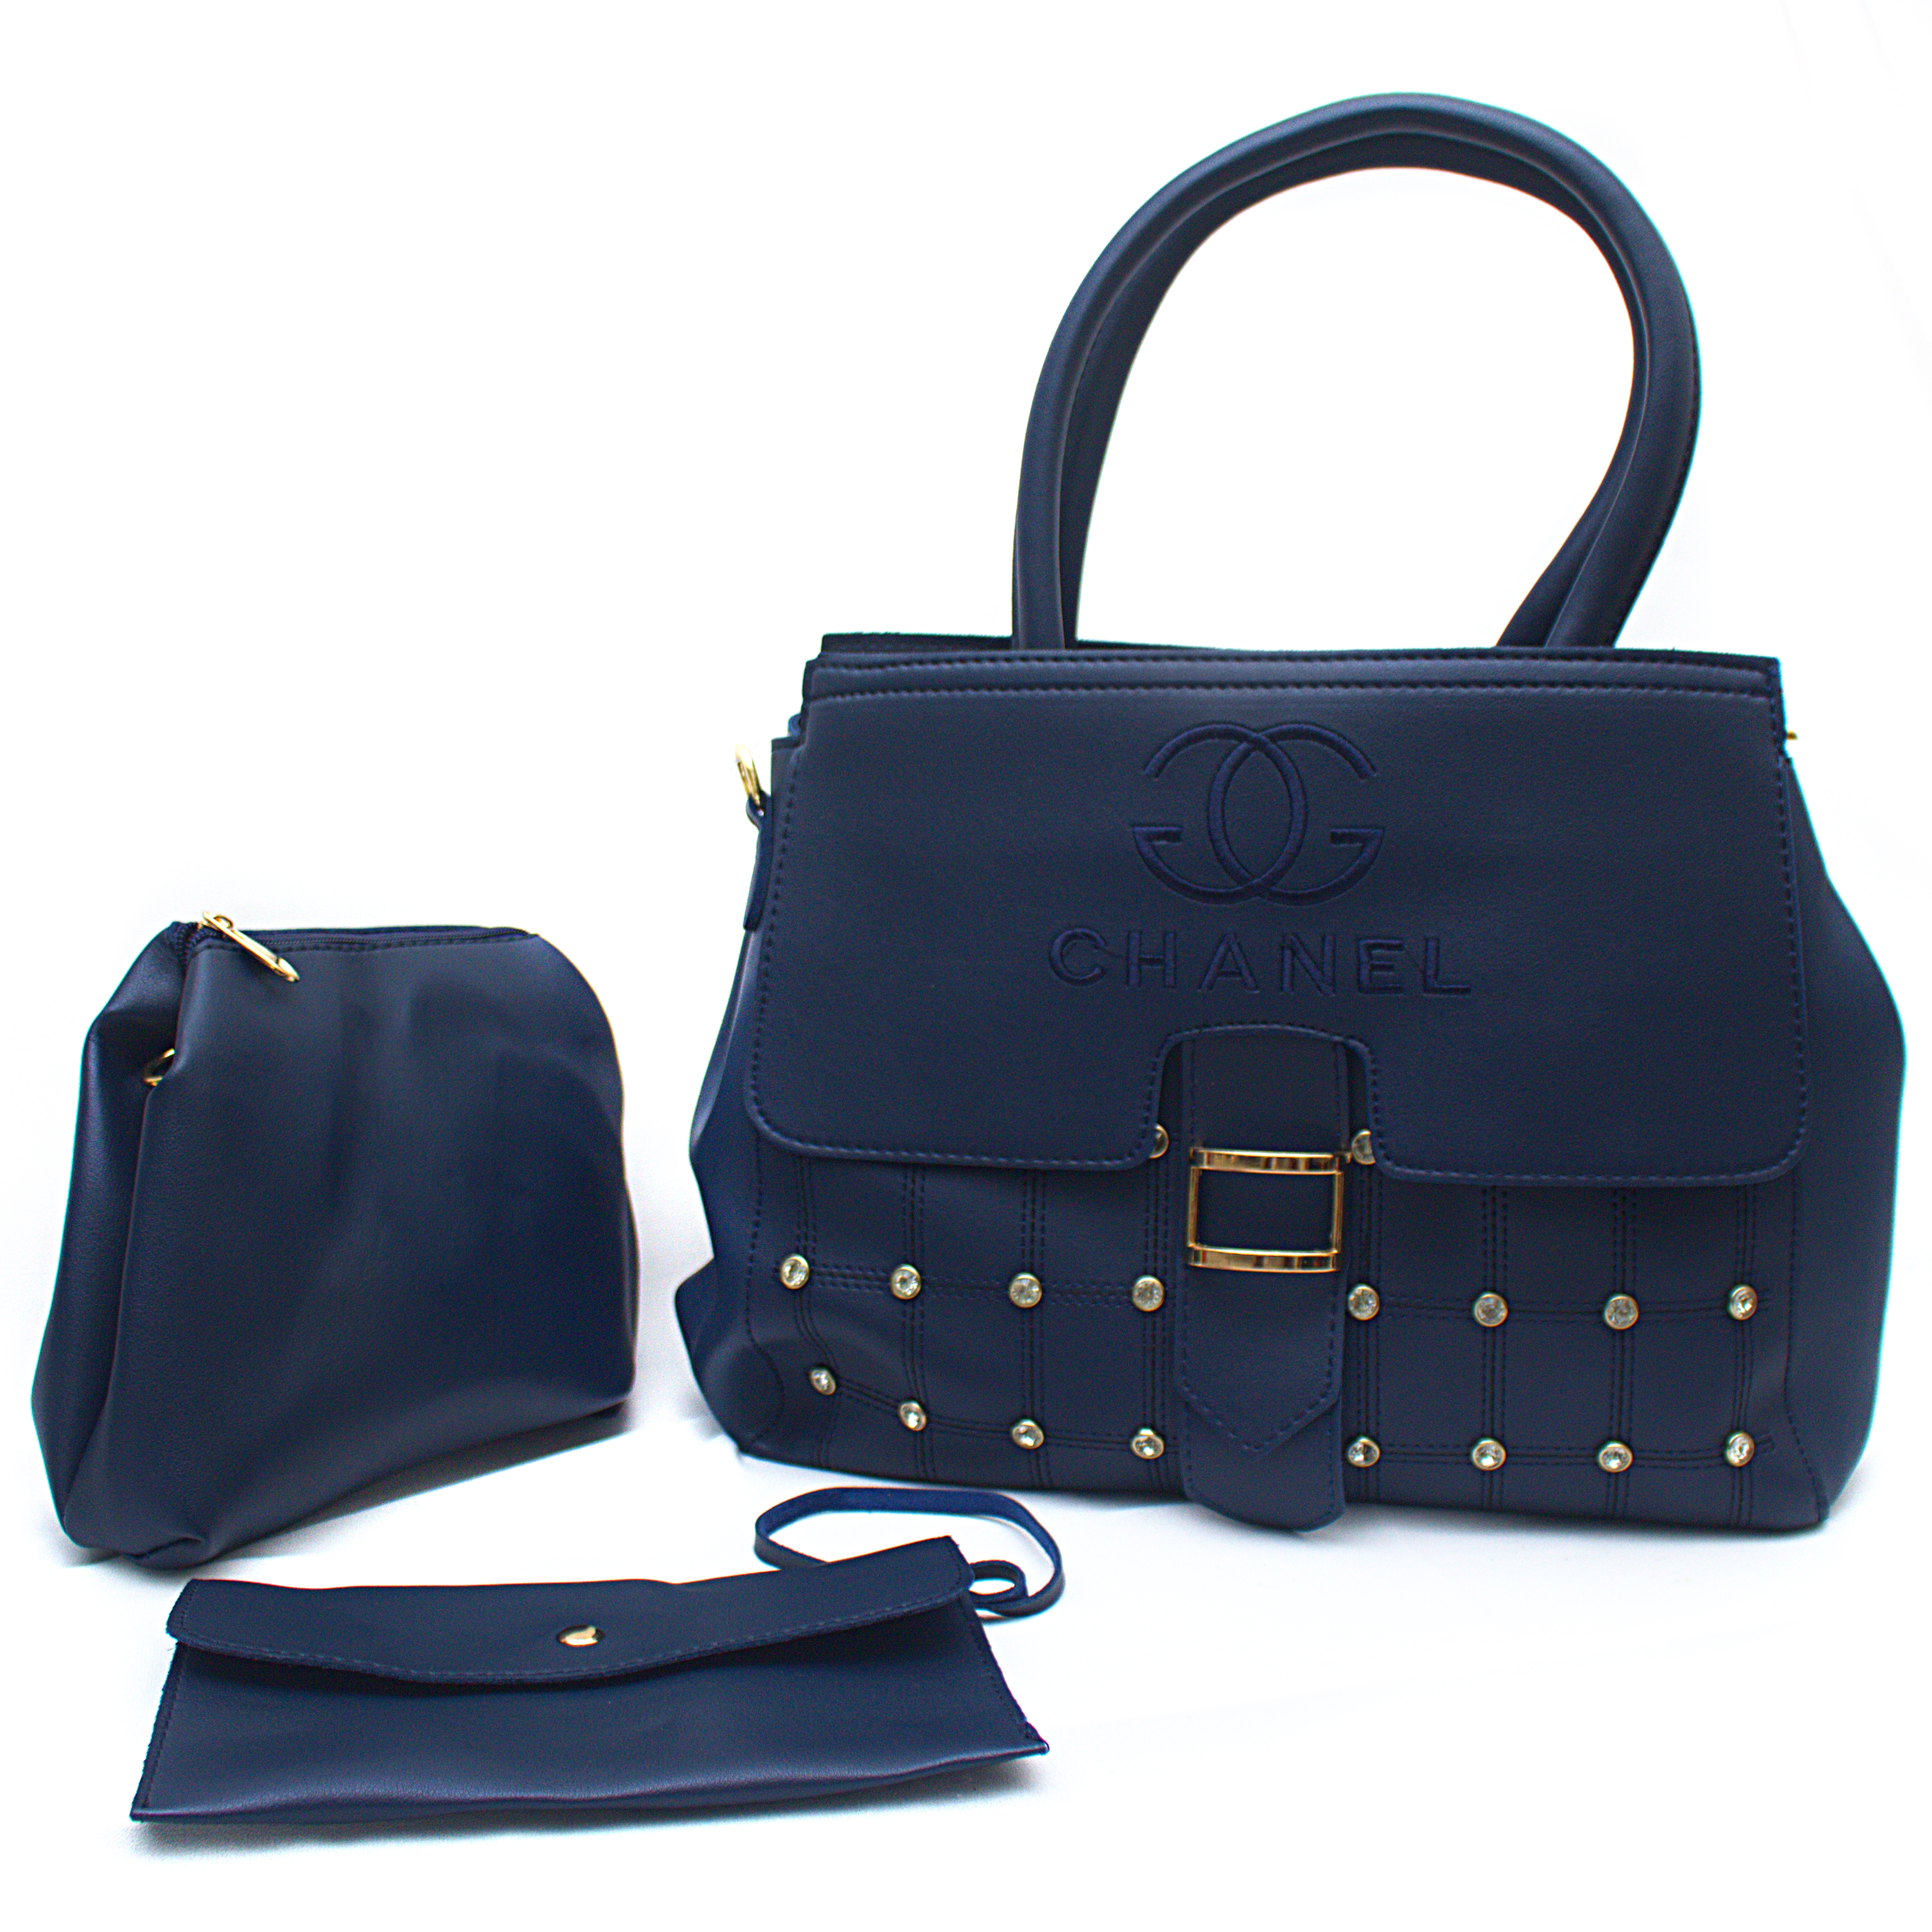 Ladies Hand Bag 1083 -3 in one